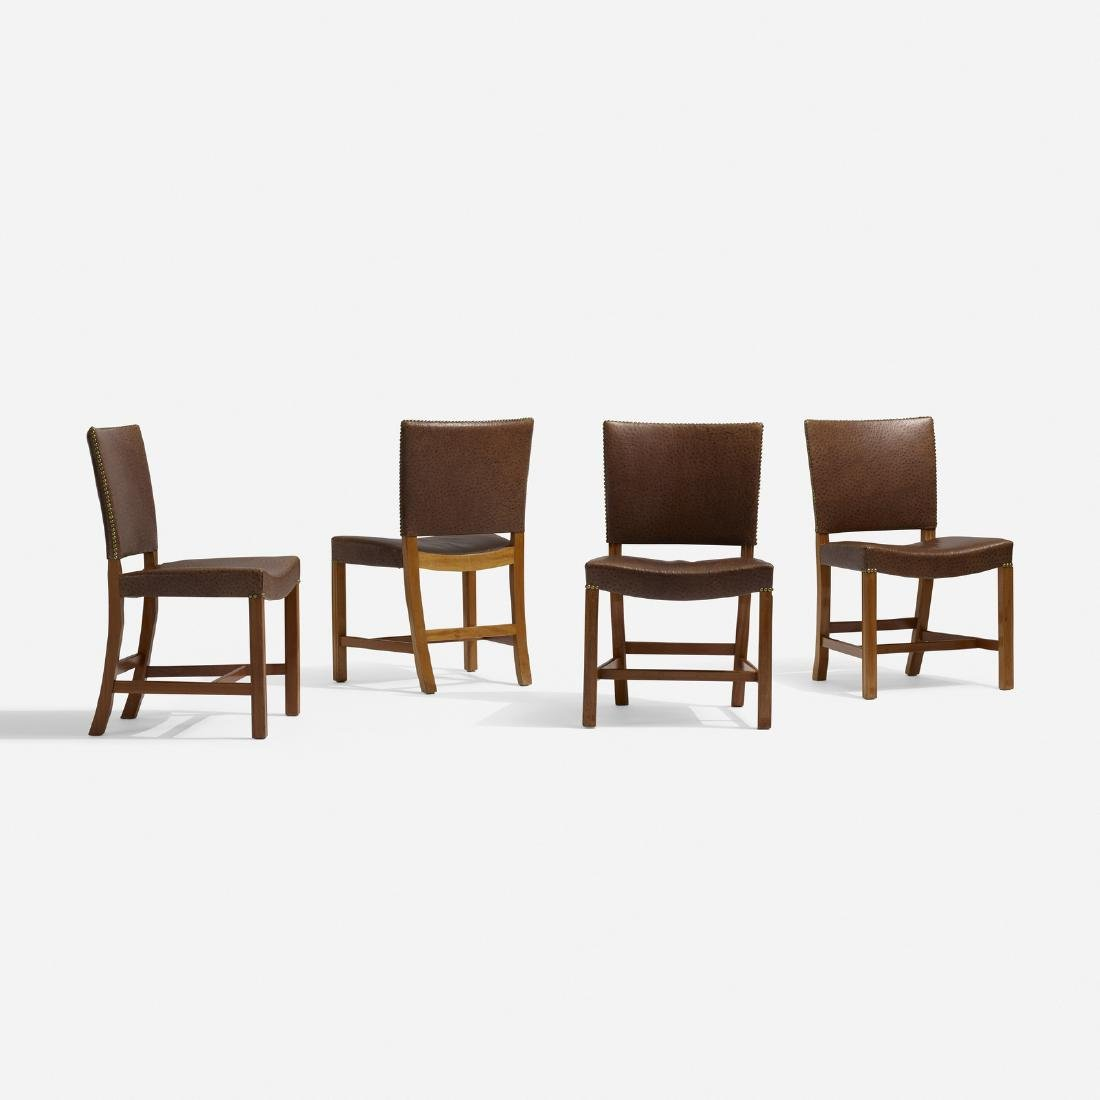 Kaare Klint, Barcelona chairs model 3758, set of four